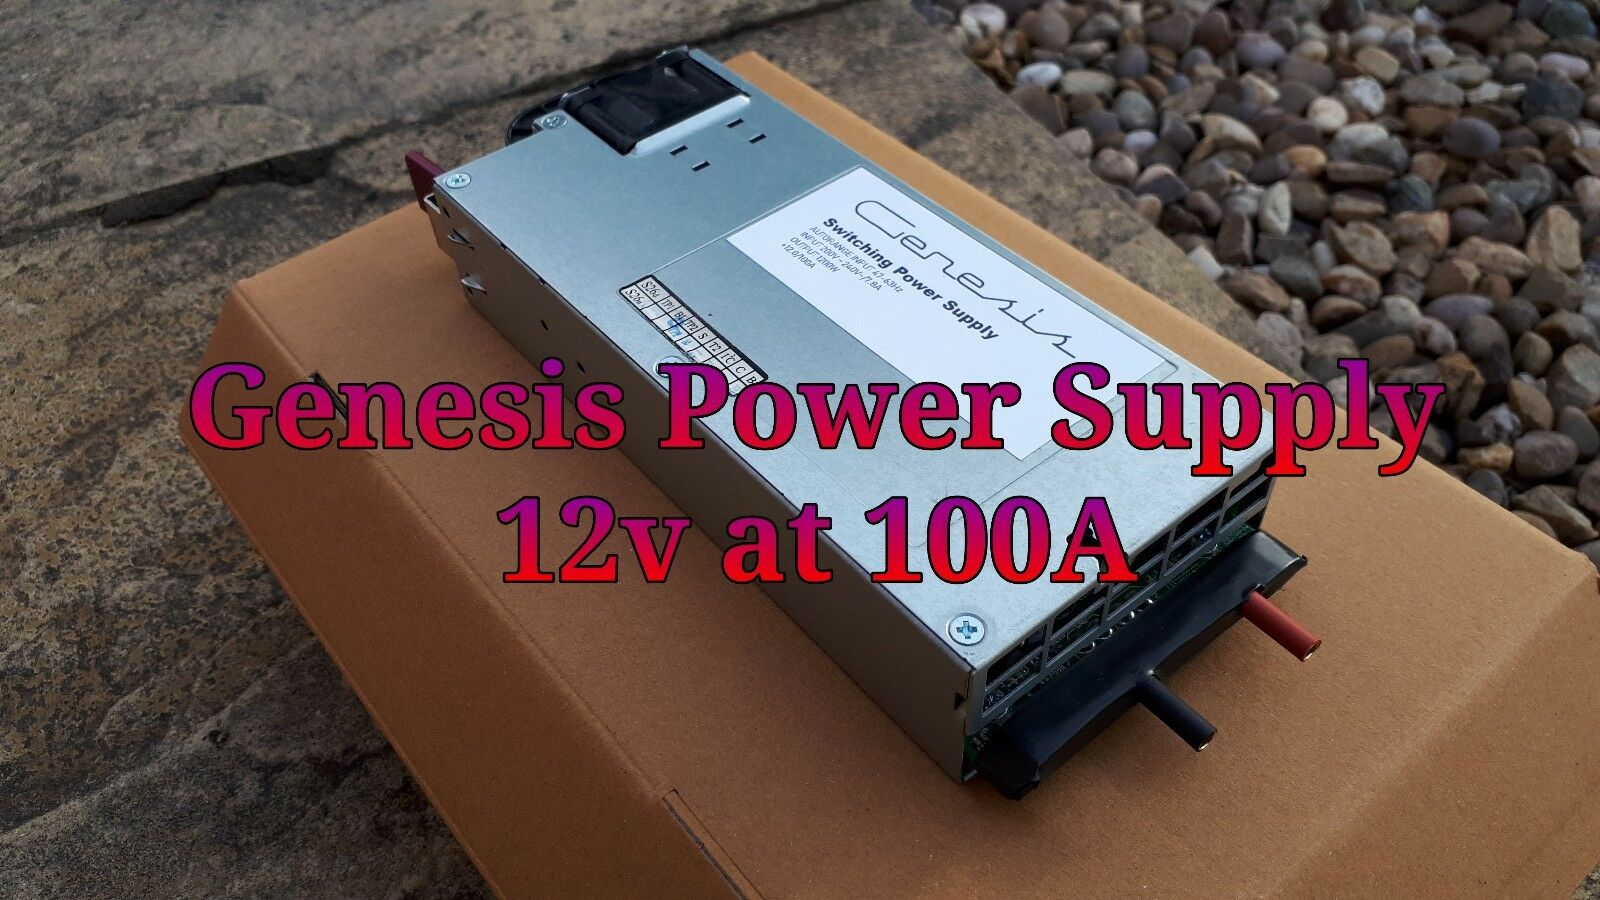 RC Power Supply.. (Genesis) Revolectrix power lab 8 ichargers. 12v 100A 1200w